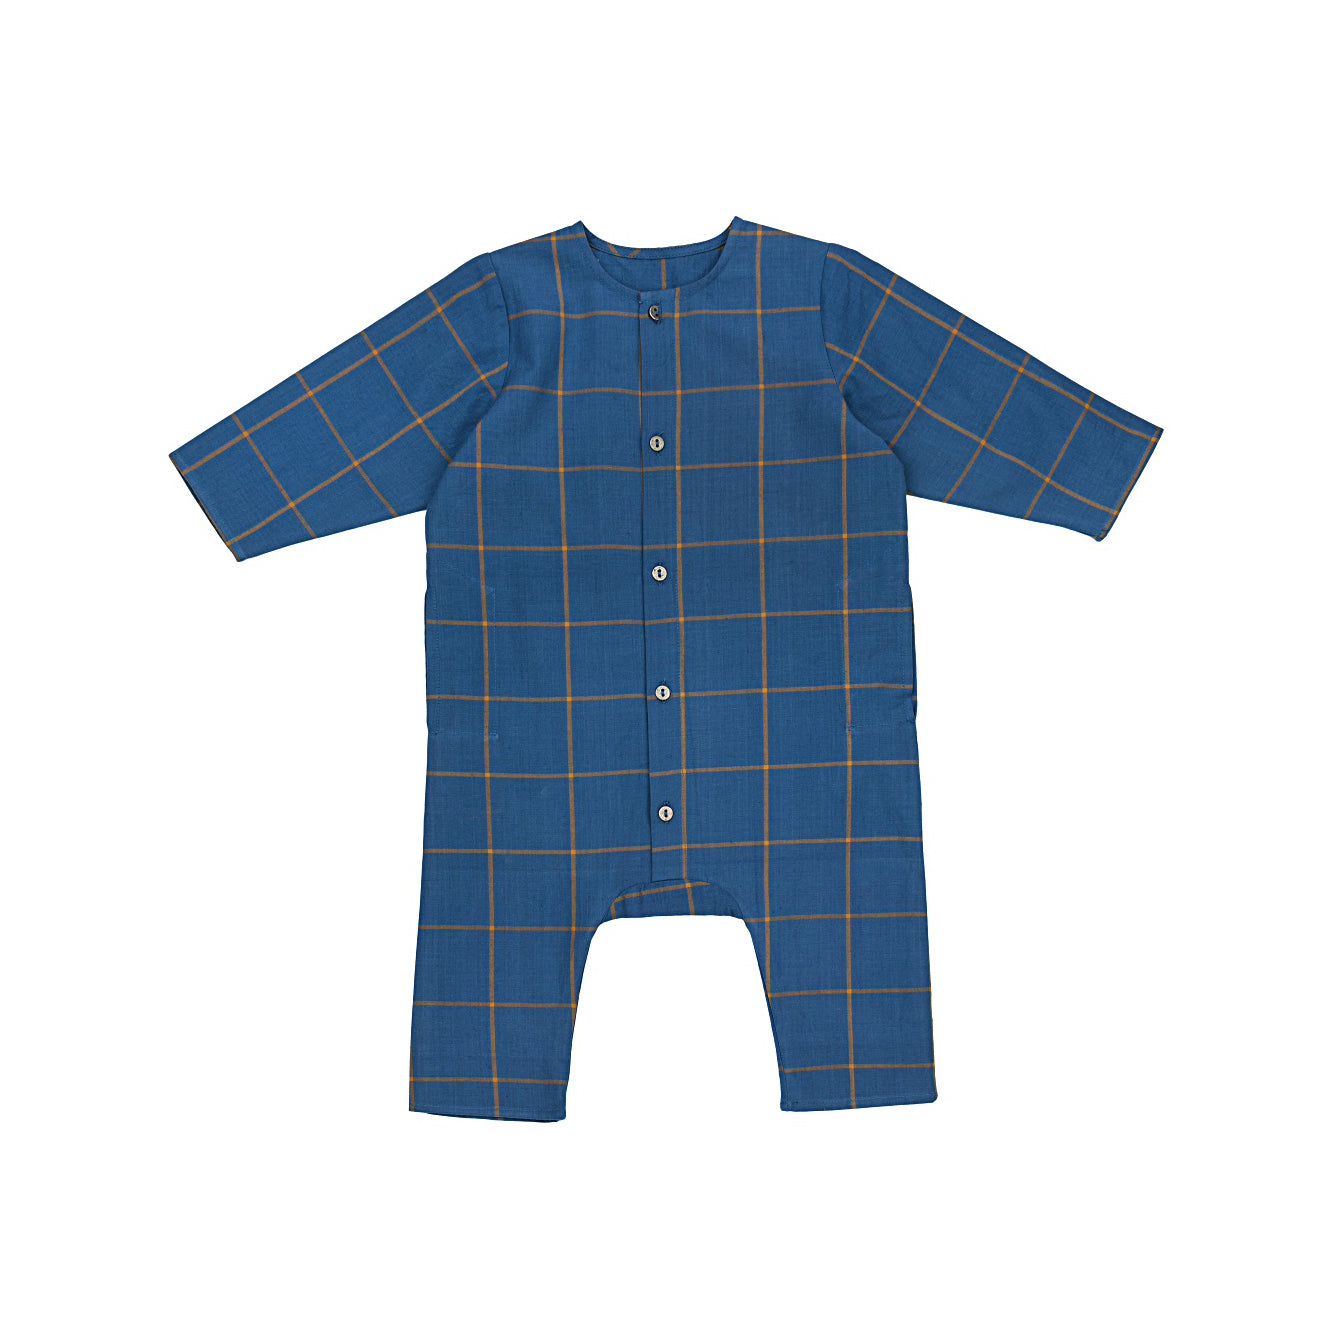 Ketiketa Kumar Organic Cotton Baby Romper in Big Check | BIEN BIEN